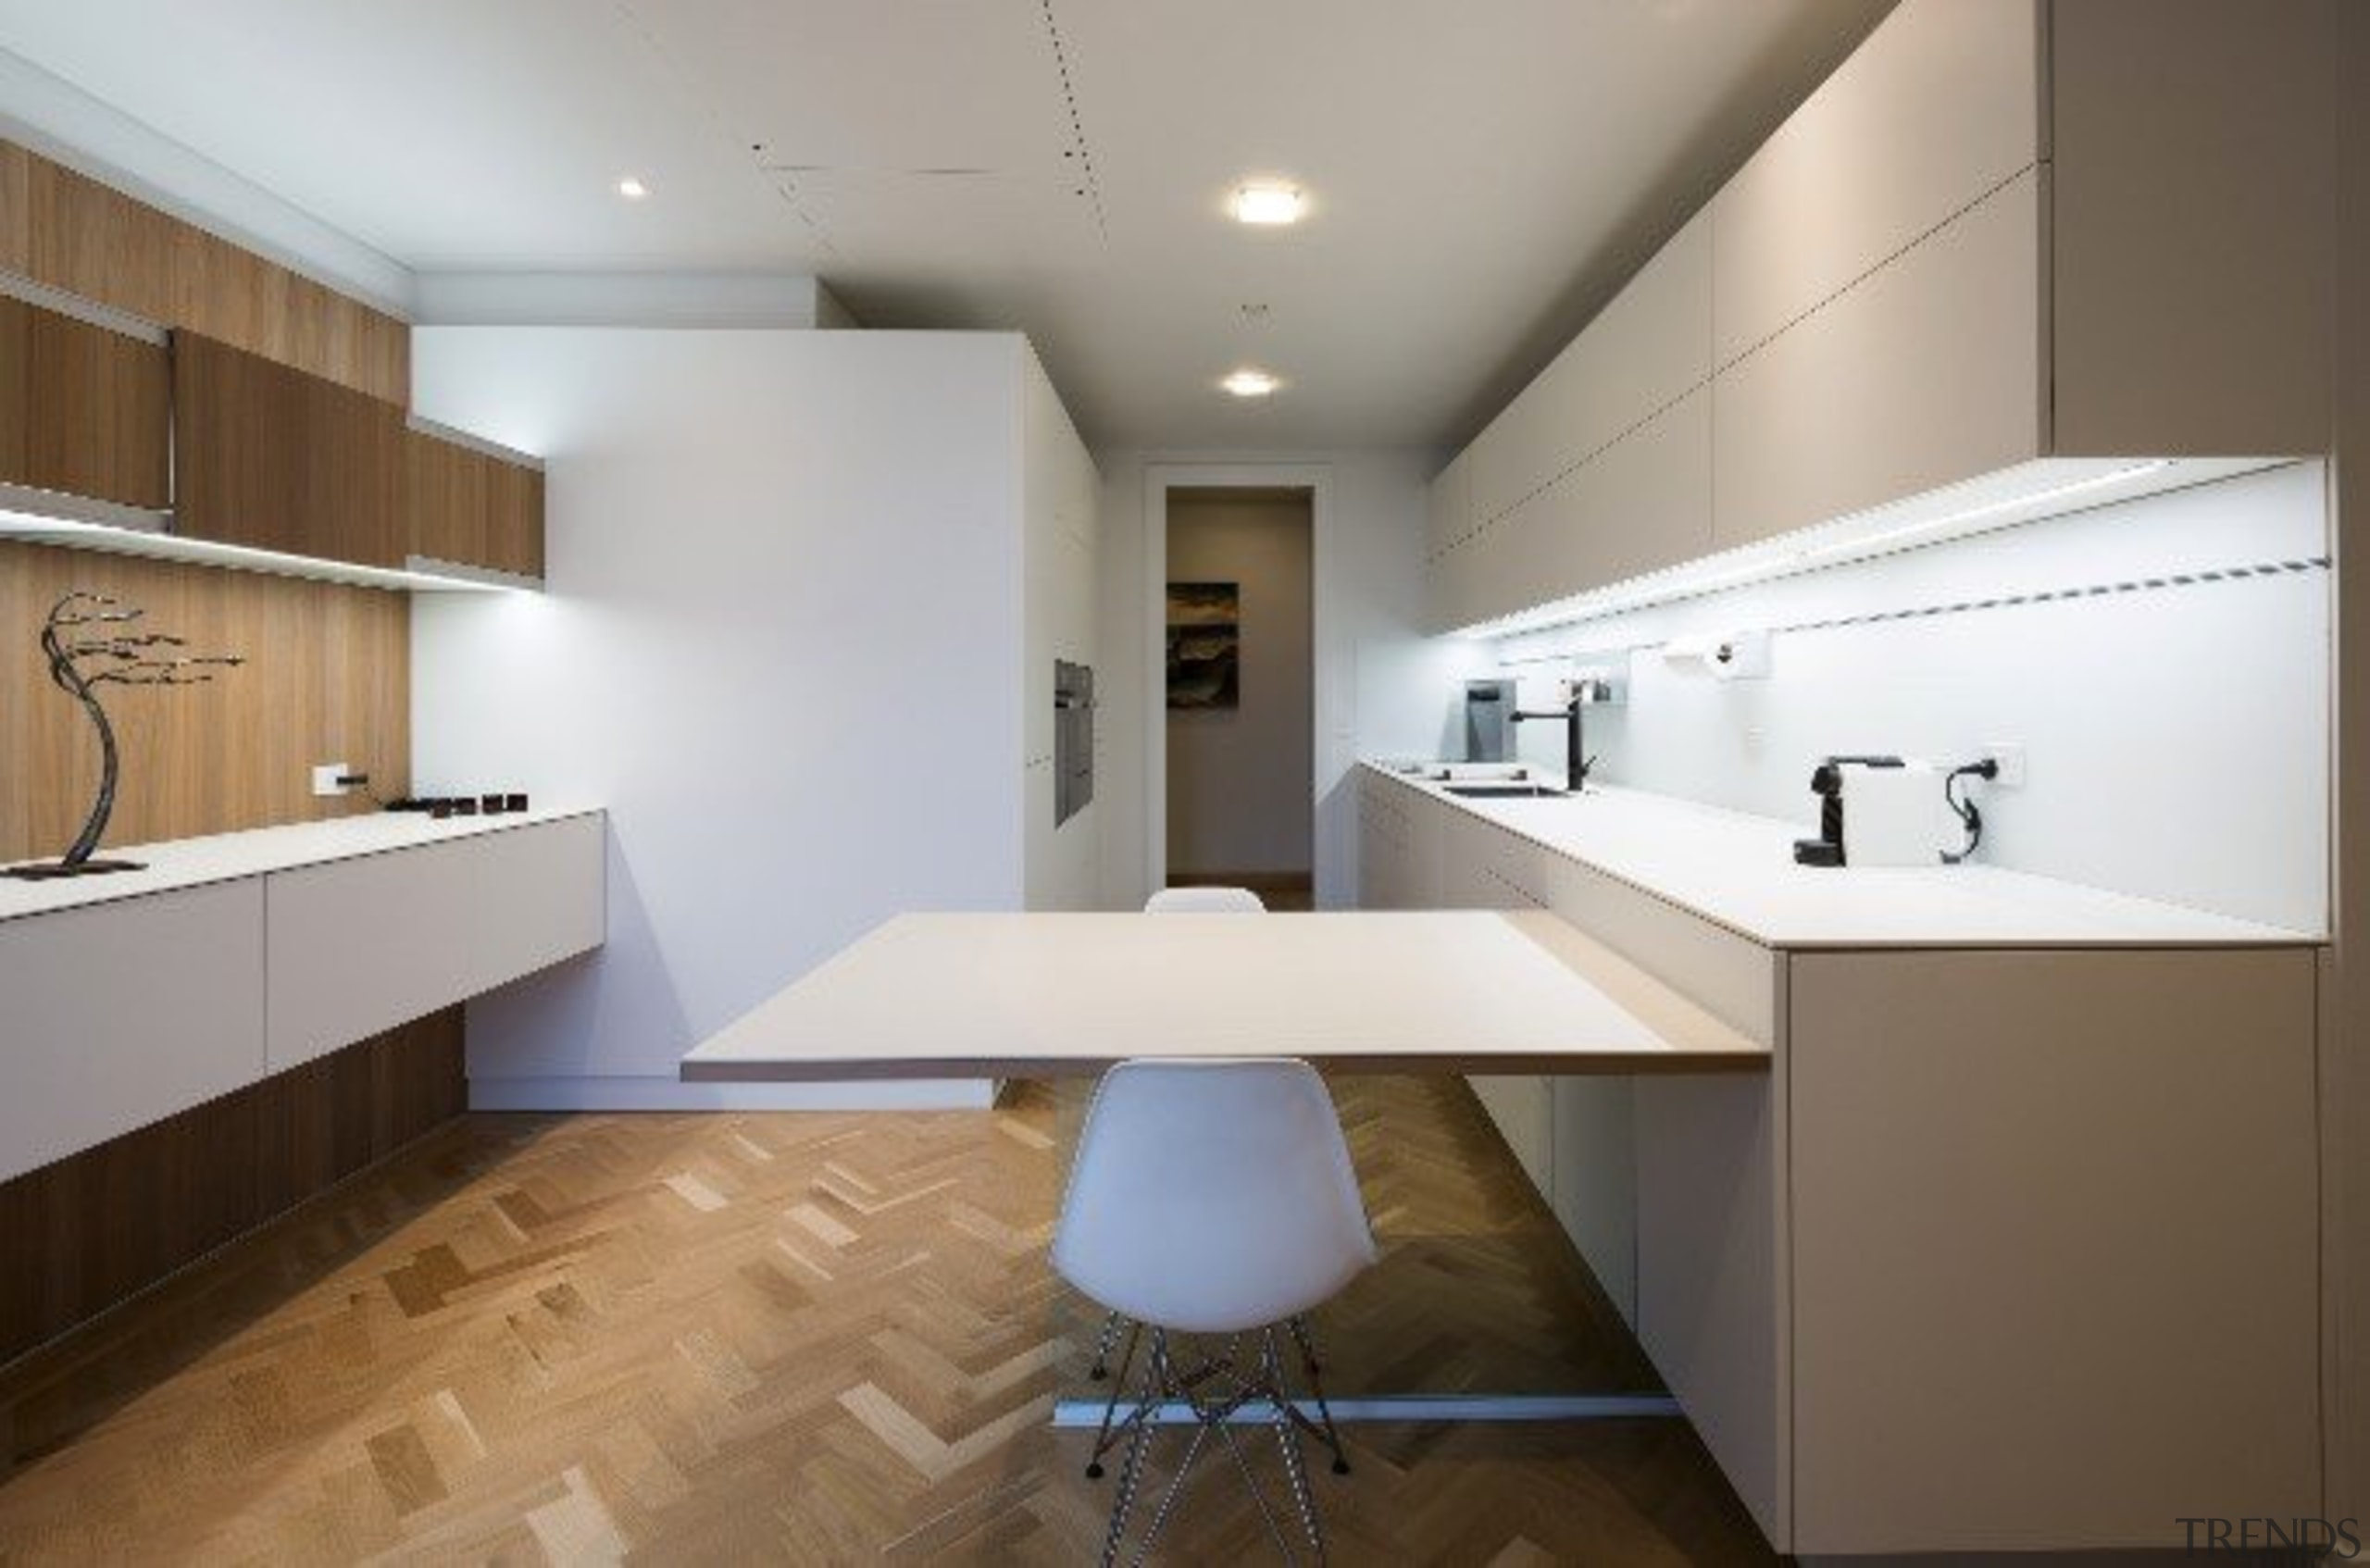 Highly Commended in the Category Imported Kitchen - architecture, cabinetry, ceiling, countertop, daylighting, floor, flooring, home, interior design, interior designer, kitchen, product design, real estate, room, sink, gray, brown